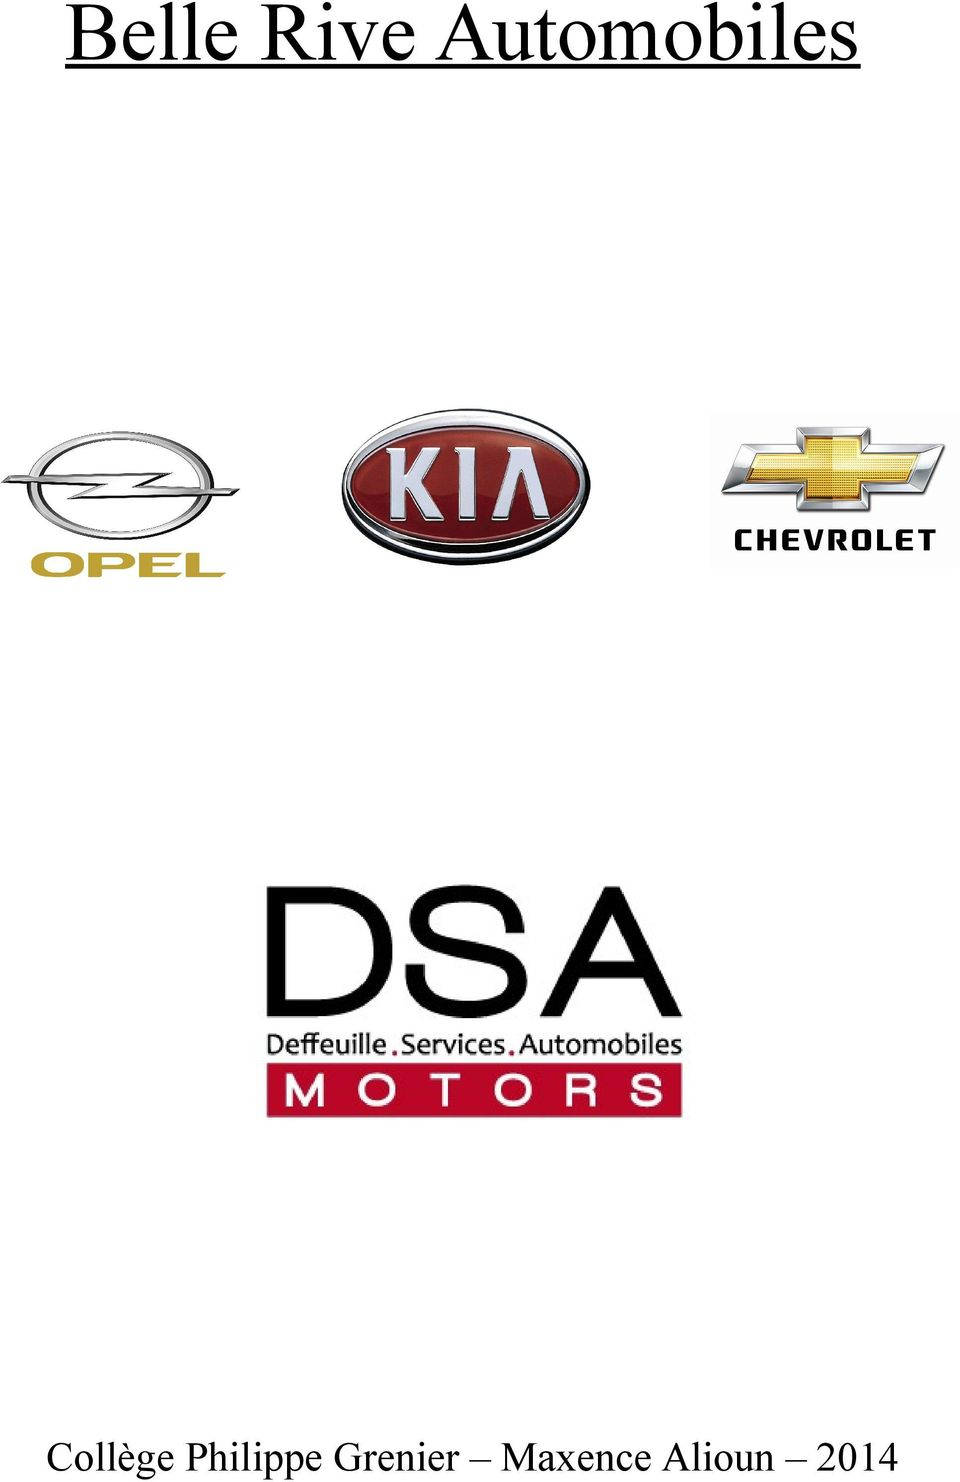 Belle rive automobiles pdf for Bell rive